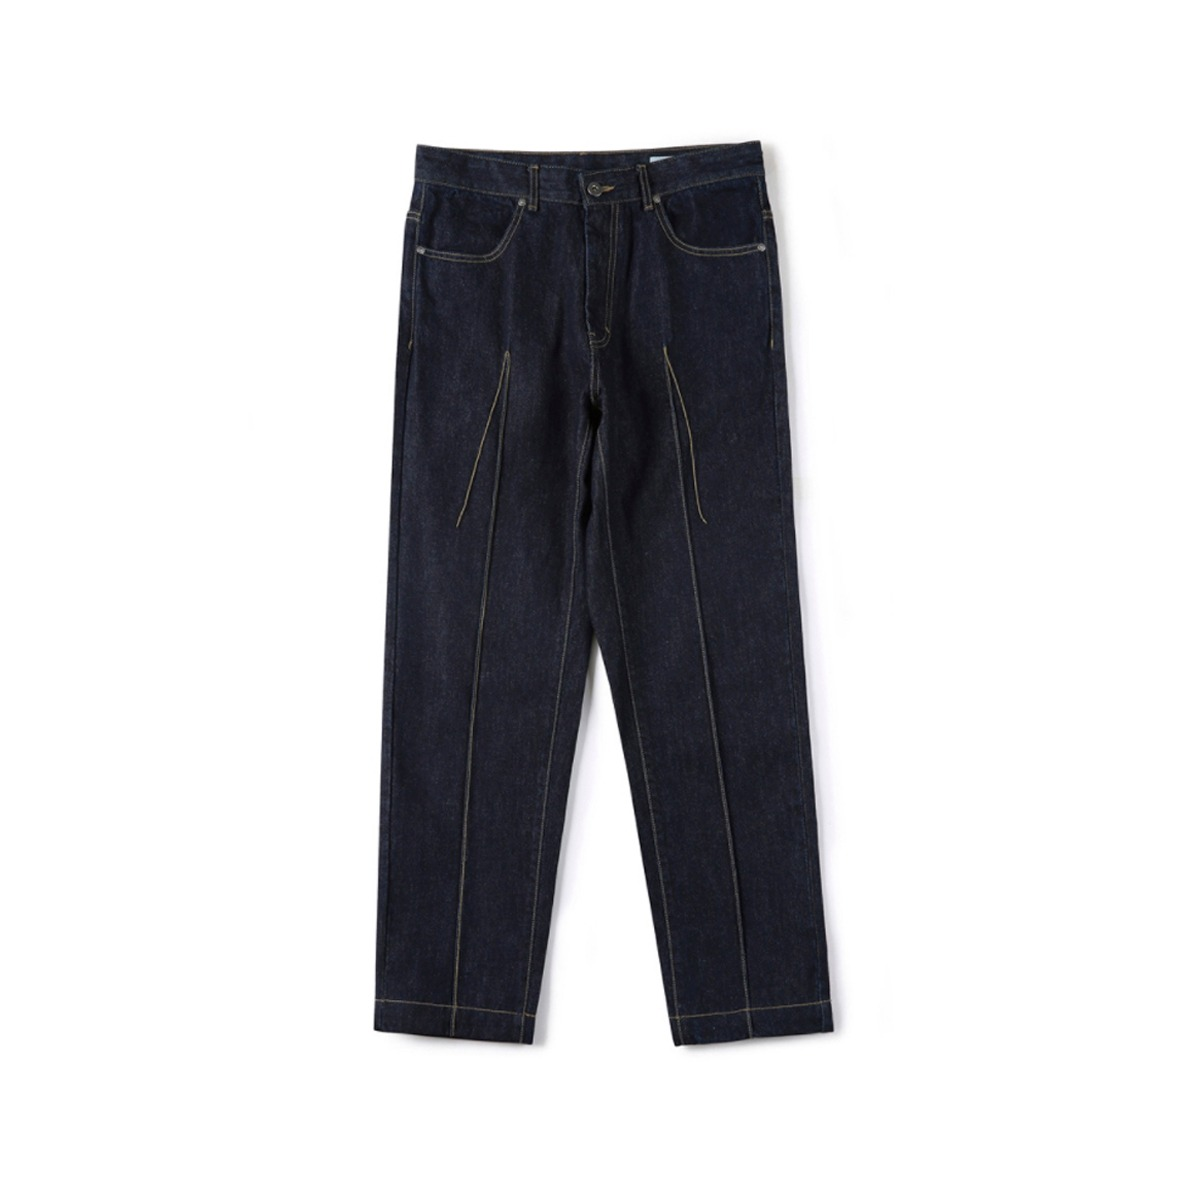 [SHIRTER] TAPERED ORIGINAL DENIM PANTS 'INDIGO'